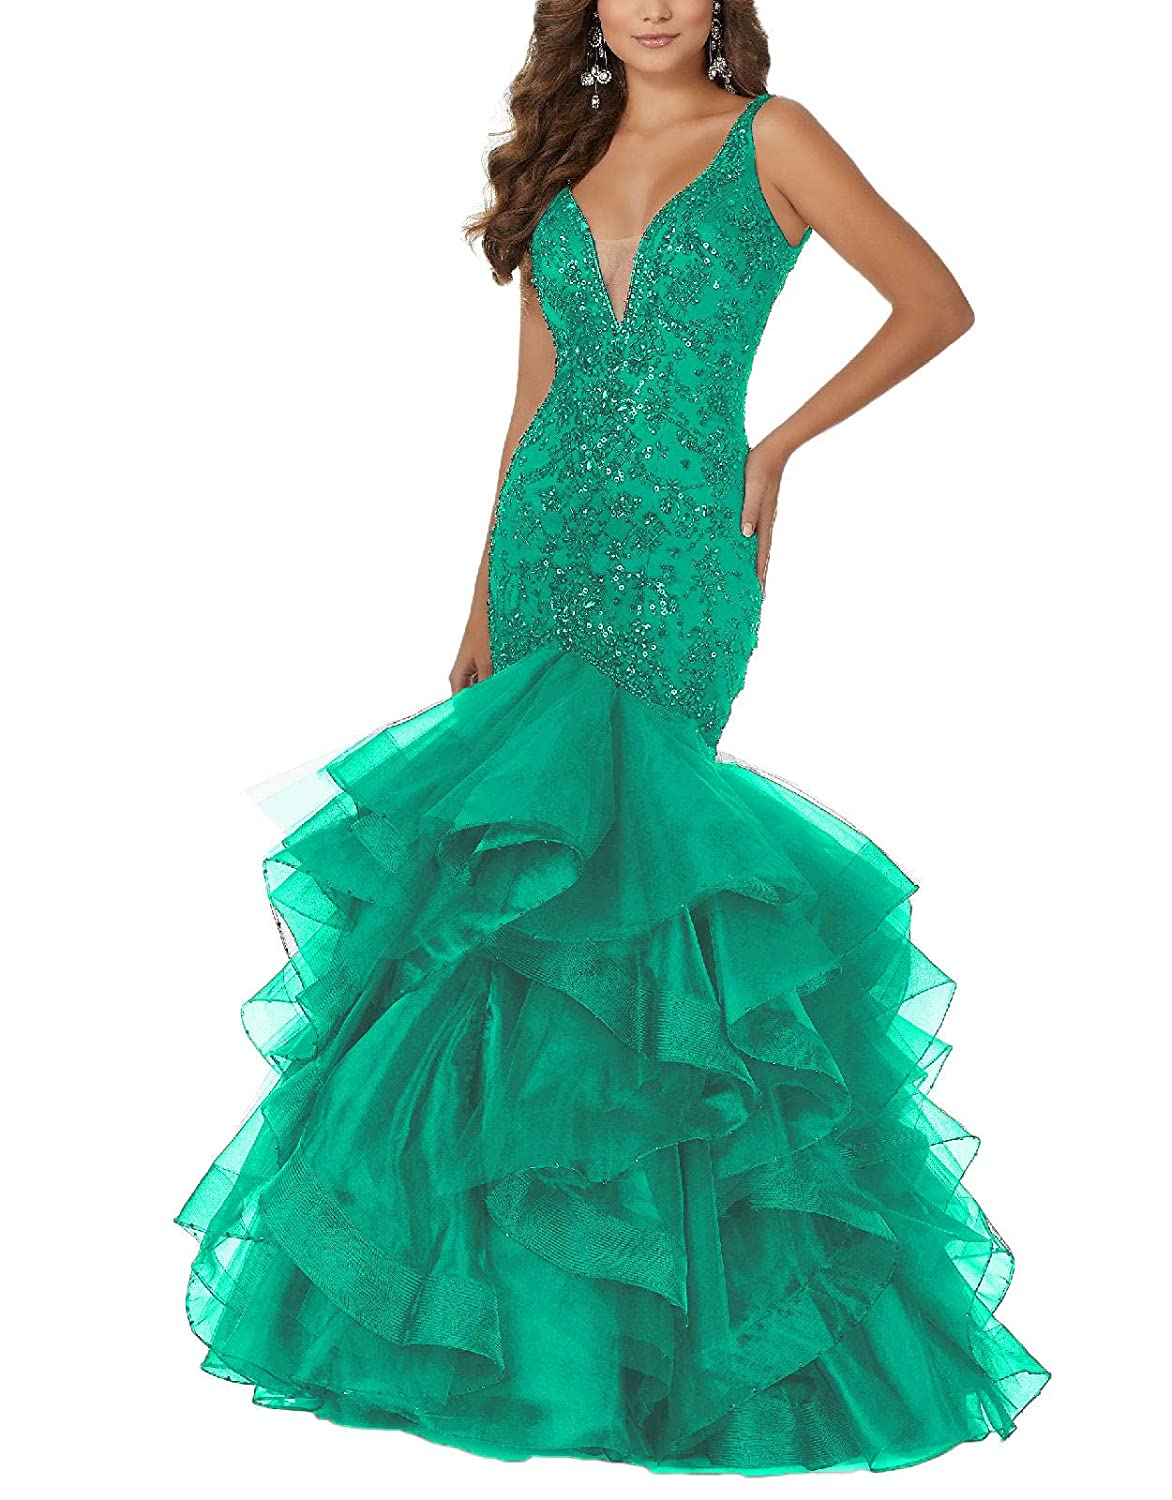 Green Yisha Bello Womens Sequins VNeck Mermaid Prom Gowns Long Tulle Beaded Evening Formal Party Dress